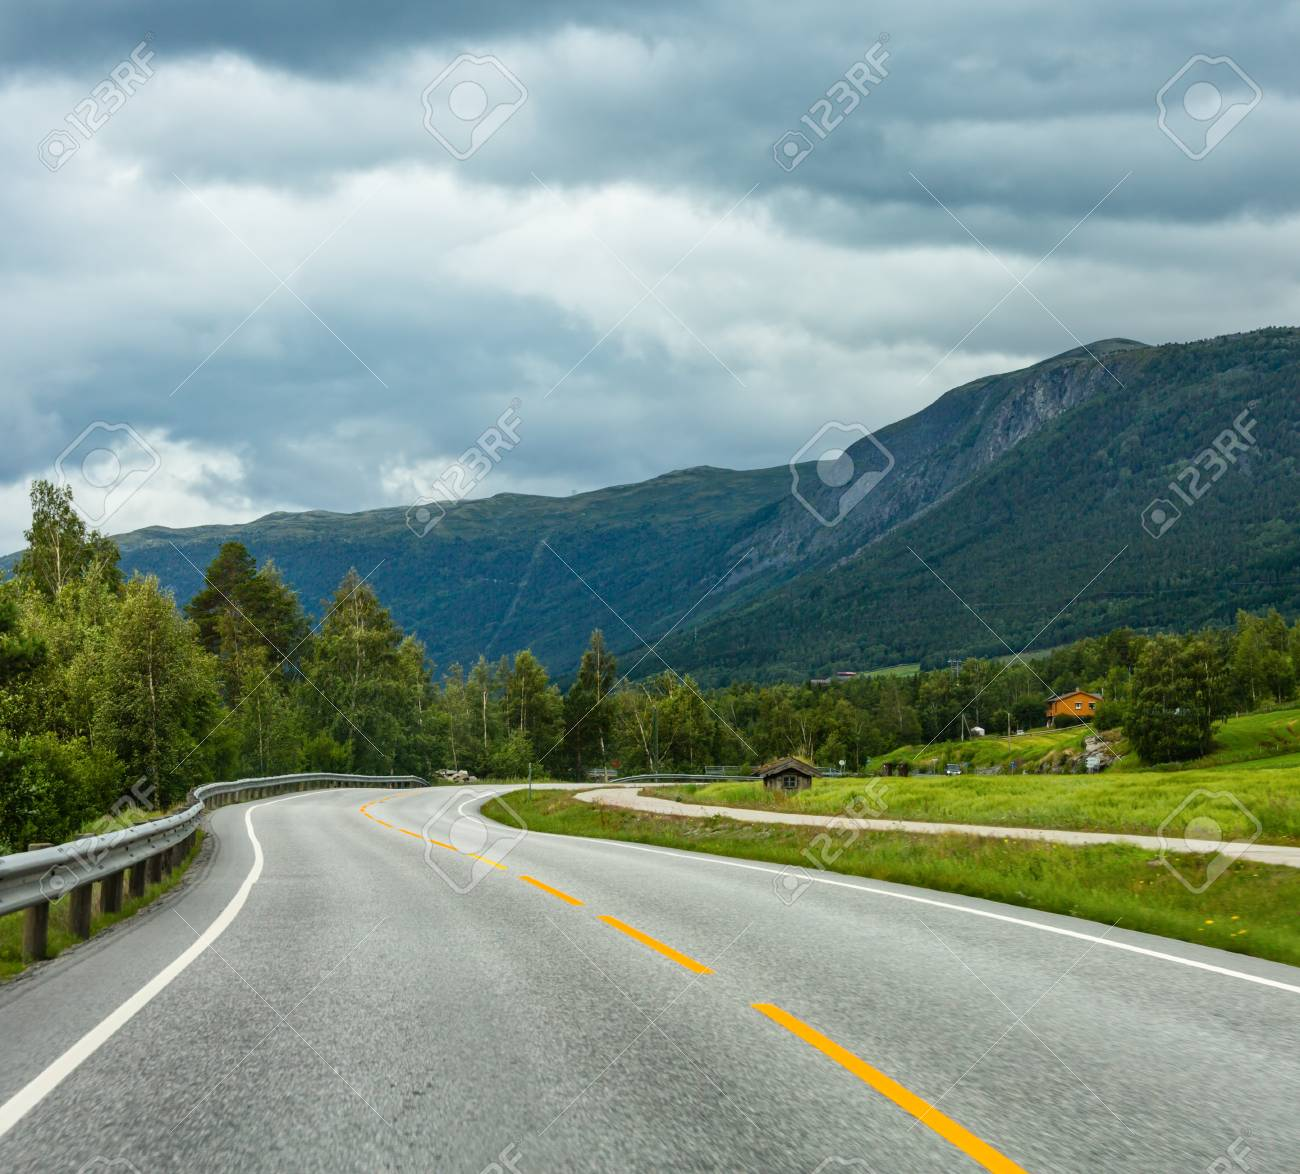 Summer cloudy mountain landscape with serpentine secondary road, Norway - 120986414